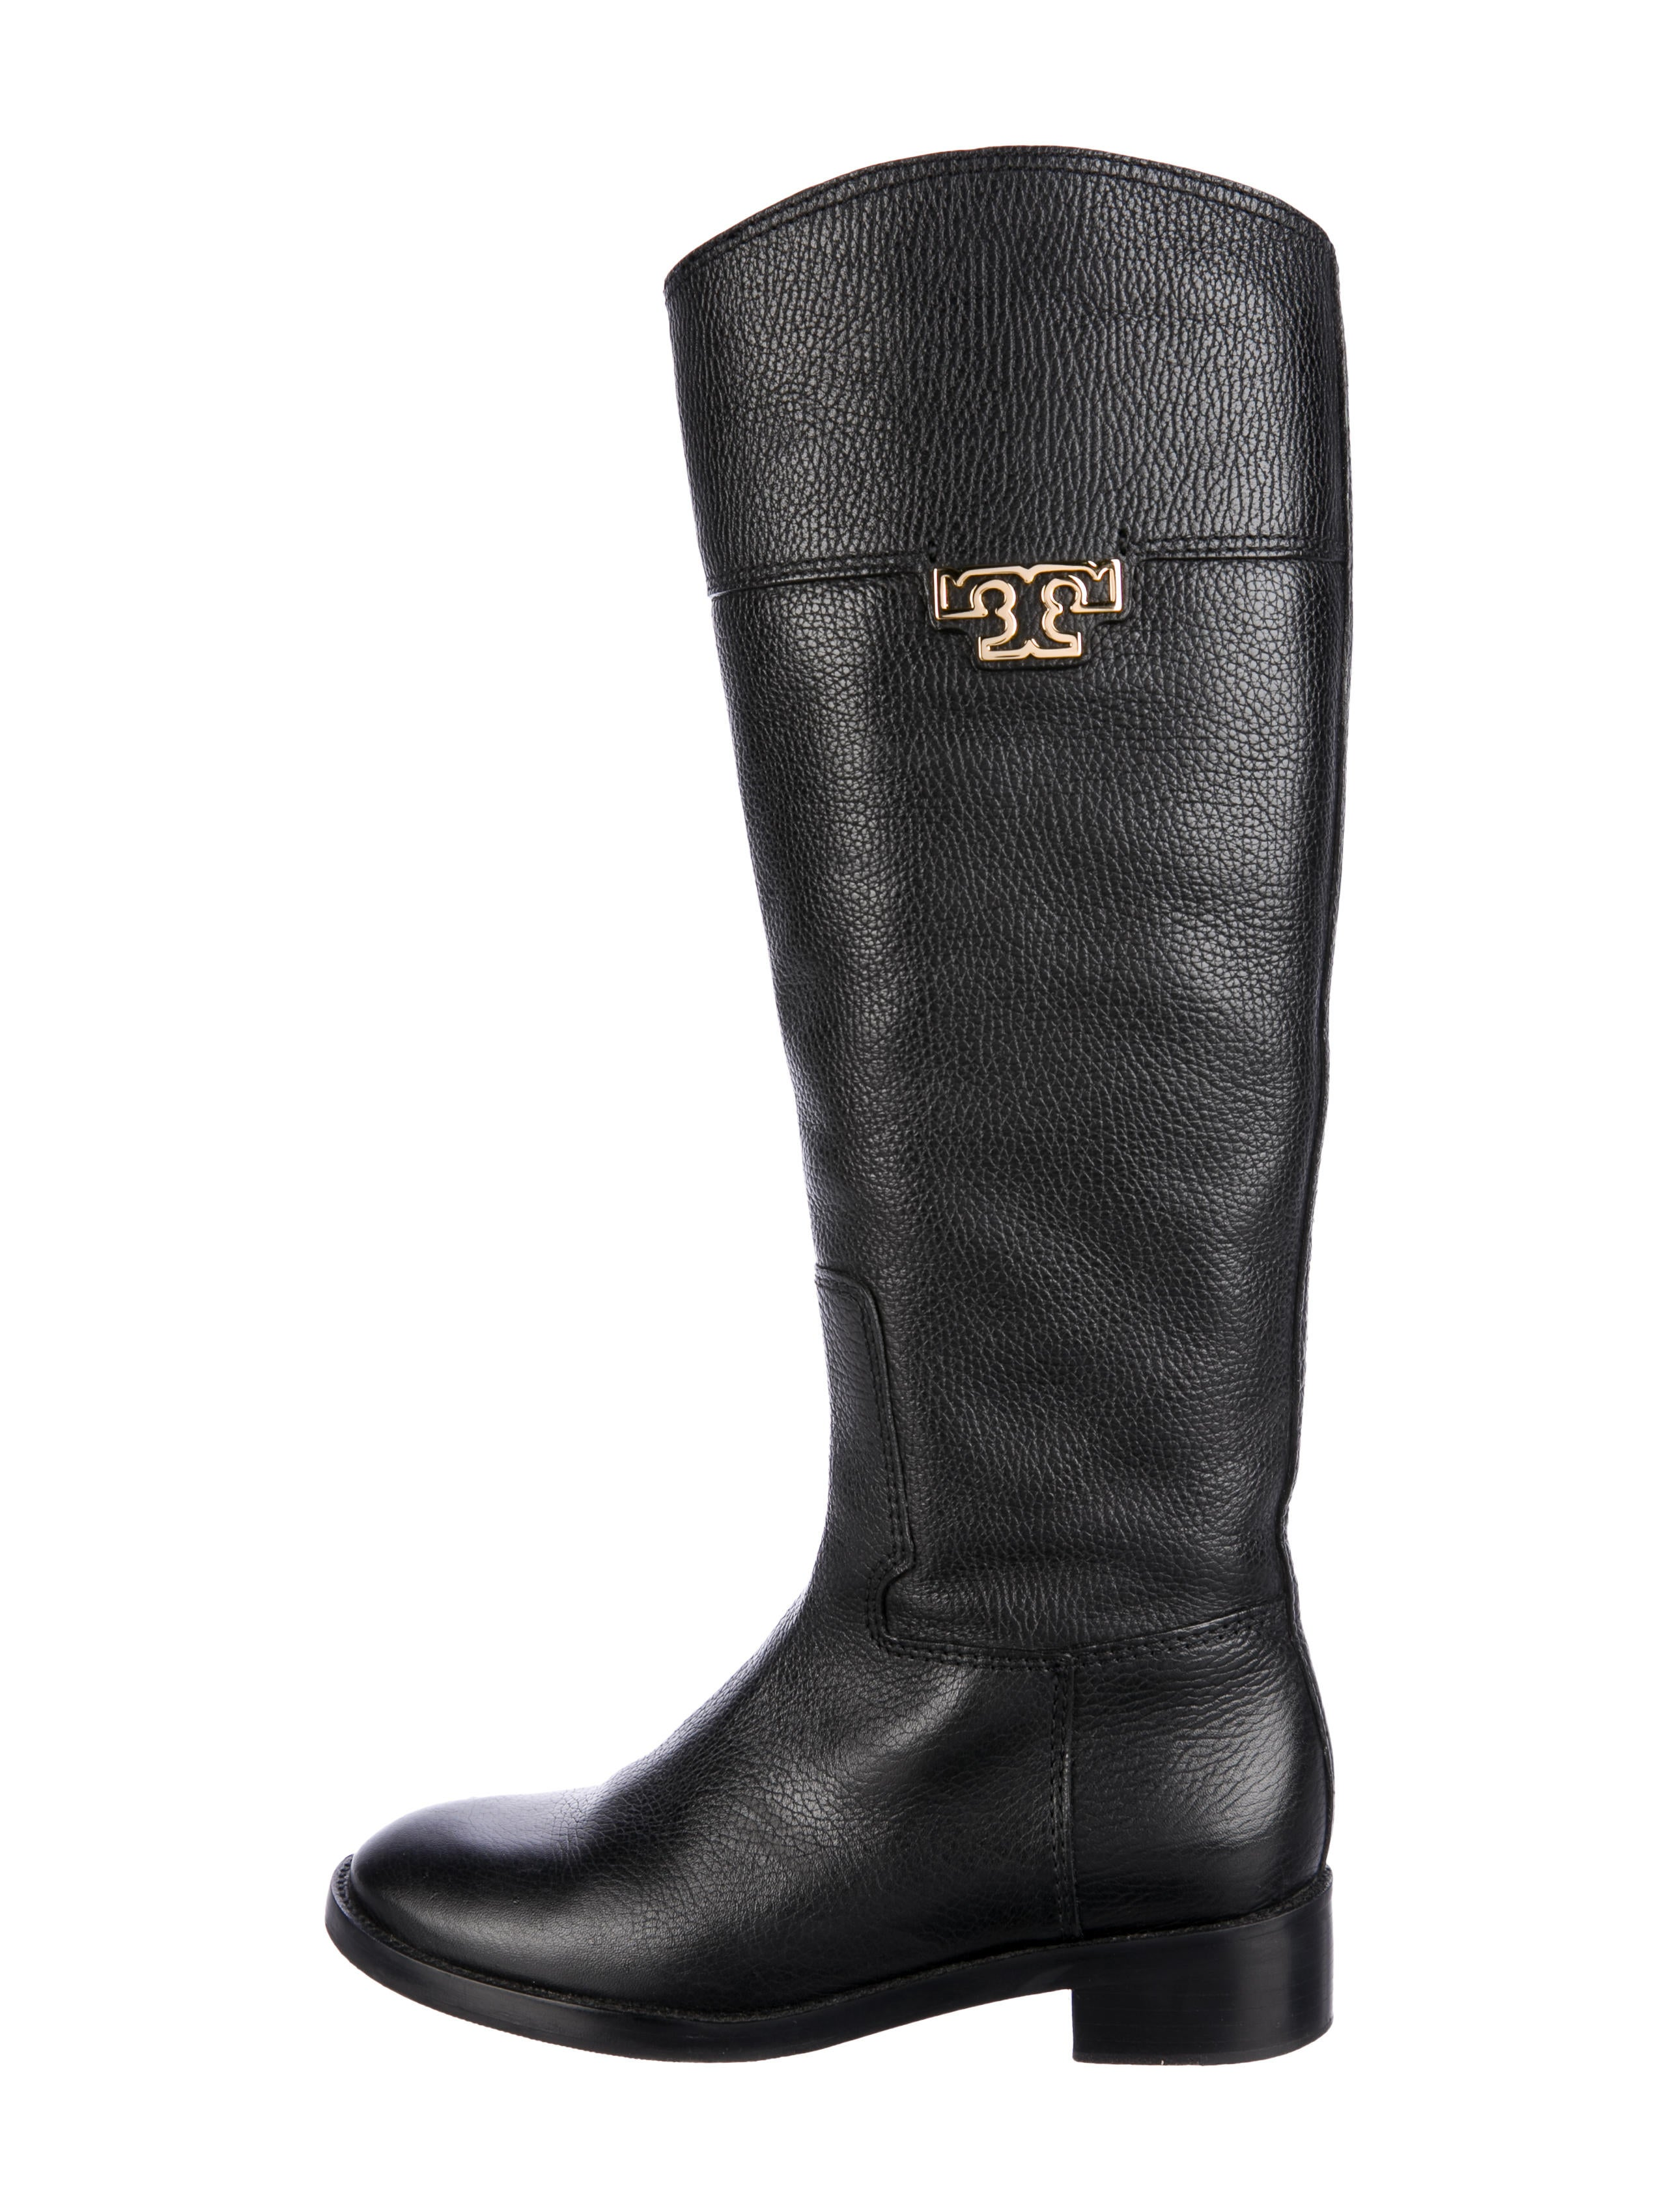 Tory Burch Joanna Riding Boots - Shoes